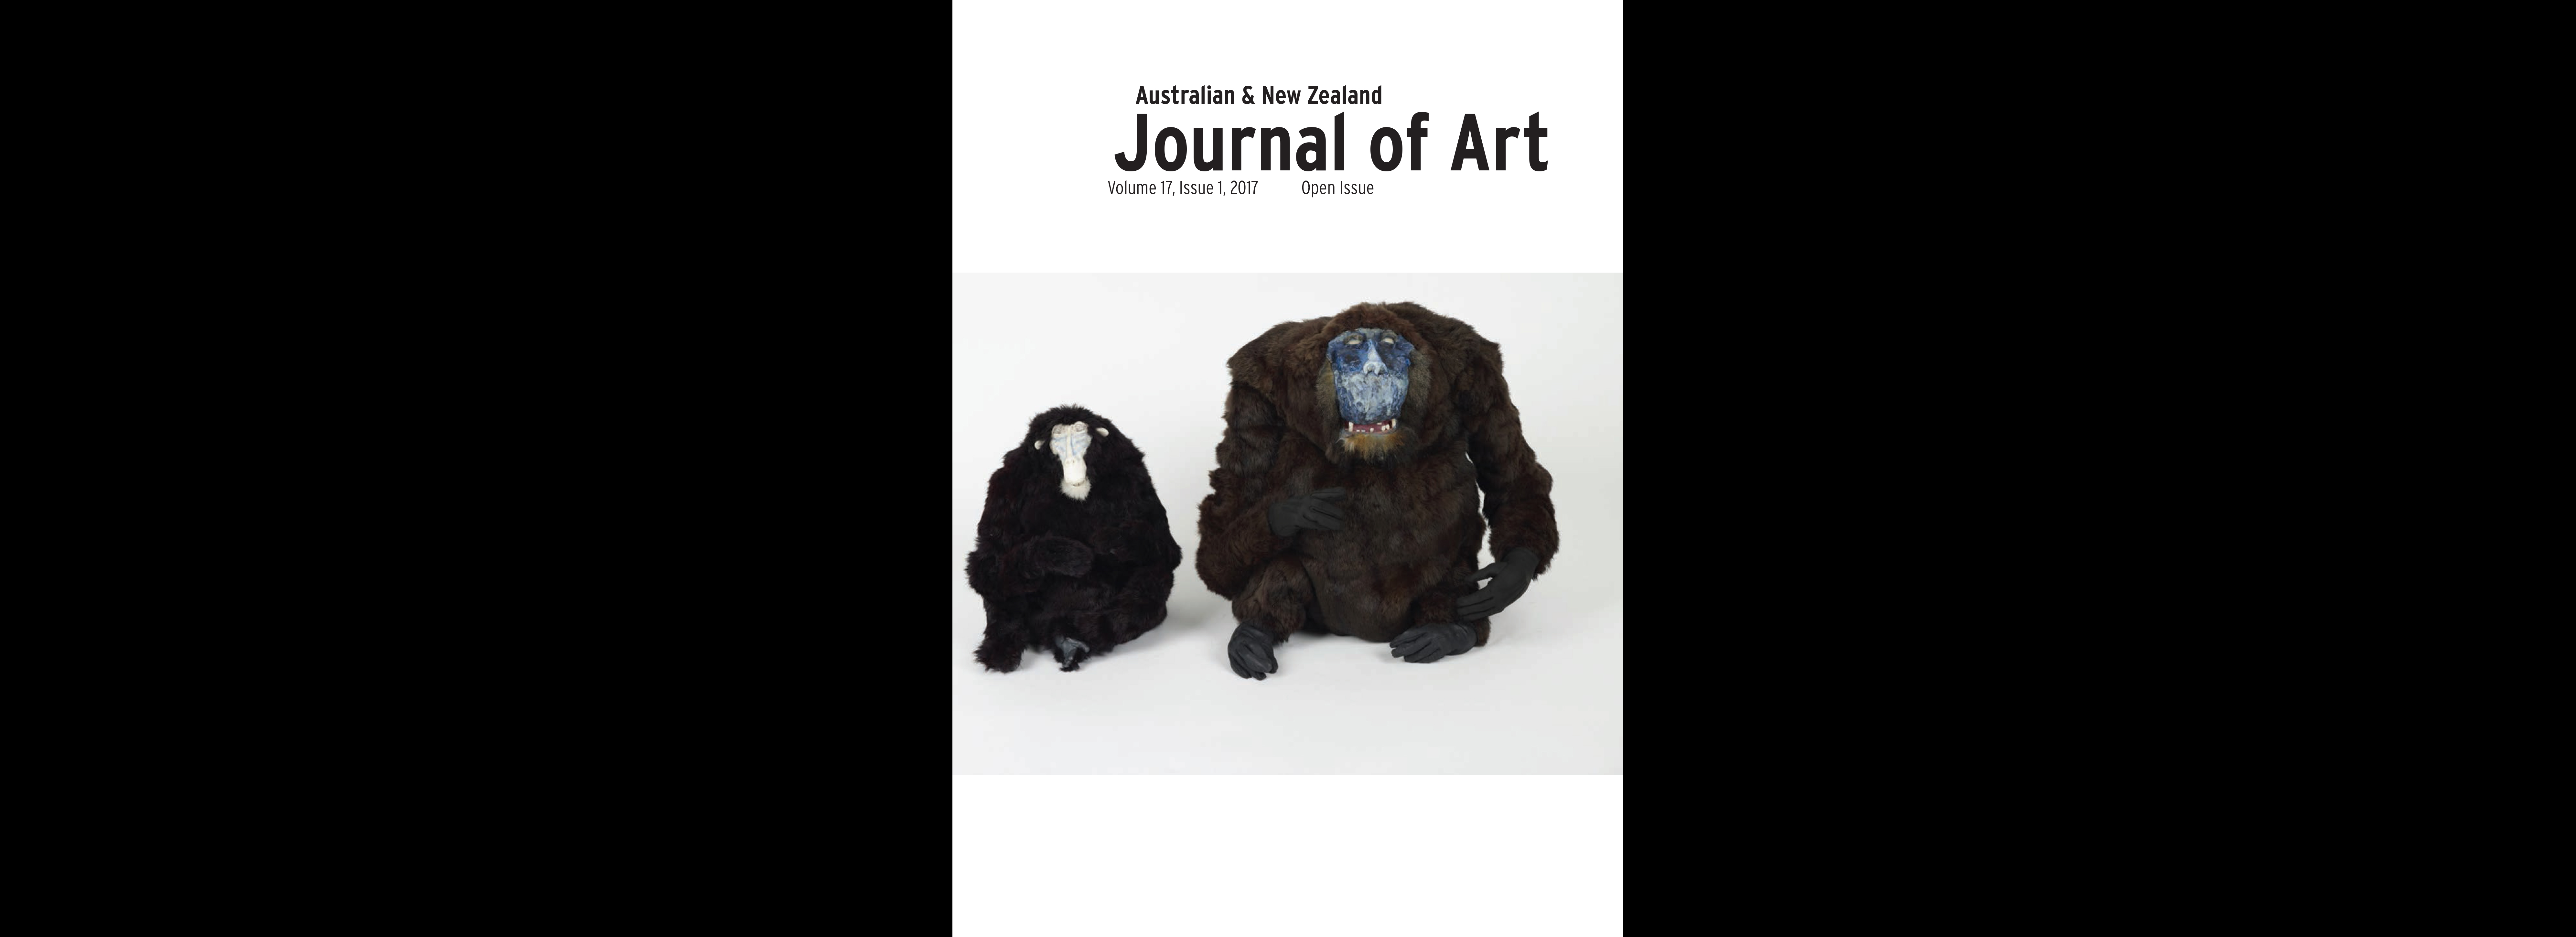 Call for papers: Australian and New Zealand Journal of Art, Issue 2, 2018.